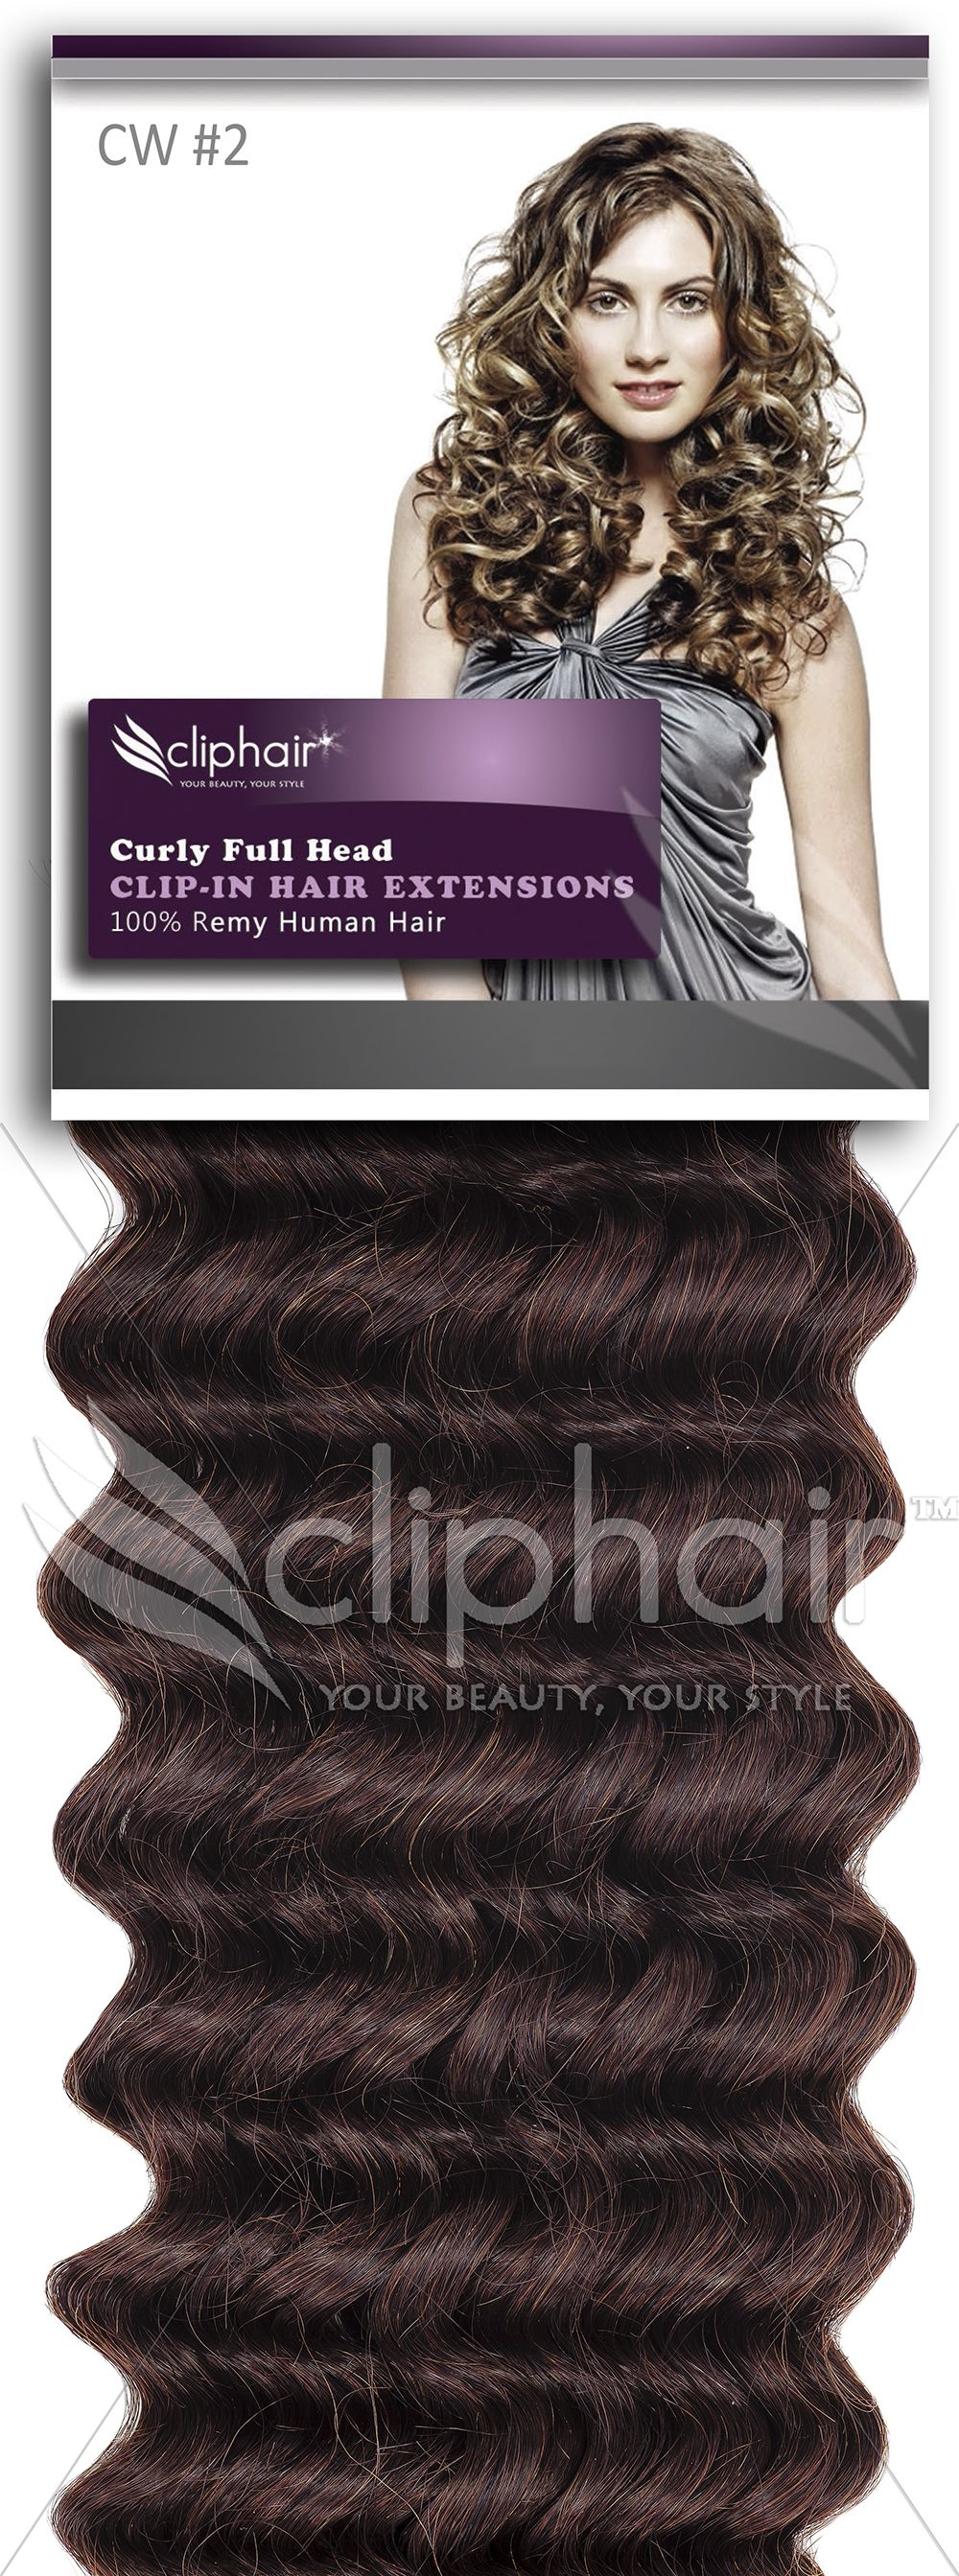 22 Inch Curly Full Head Remy Clip In Human Hair Extensions Shop